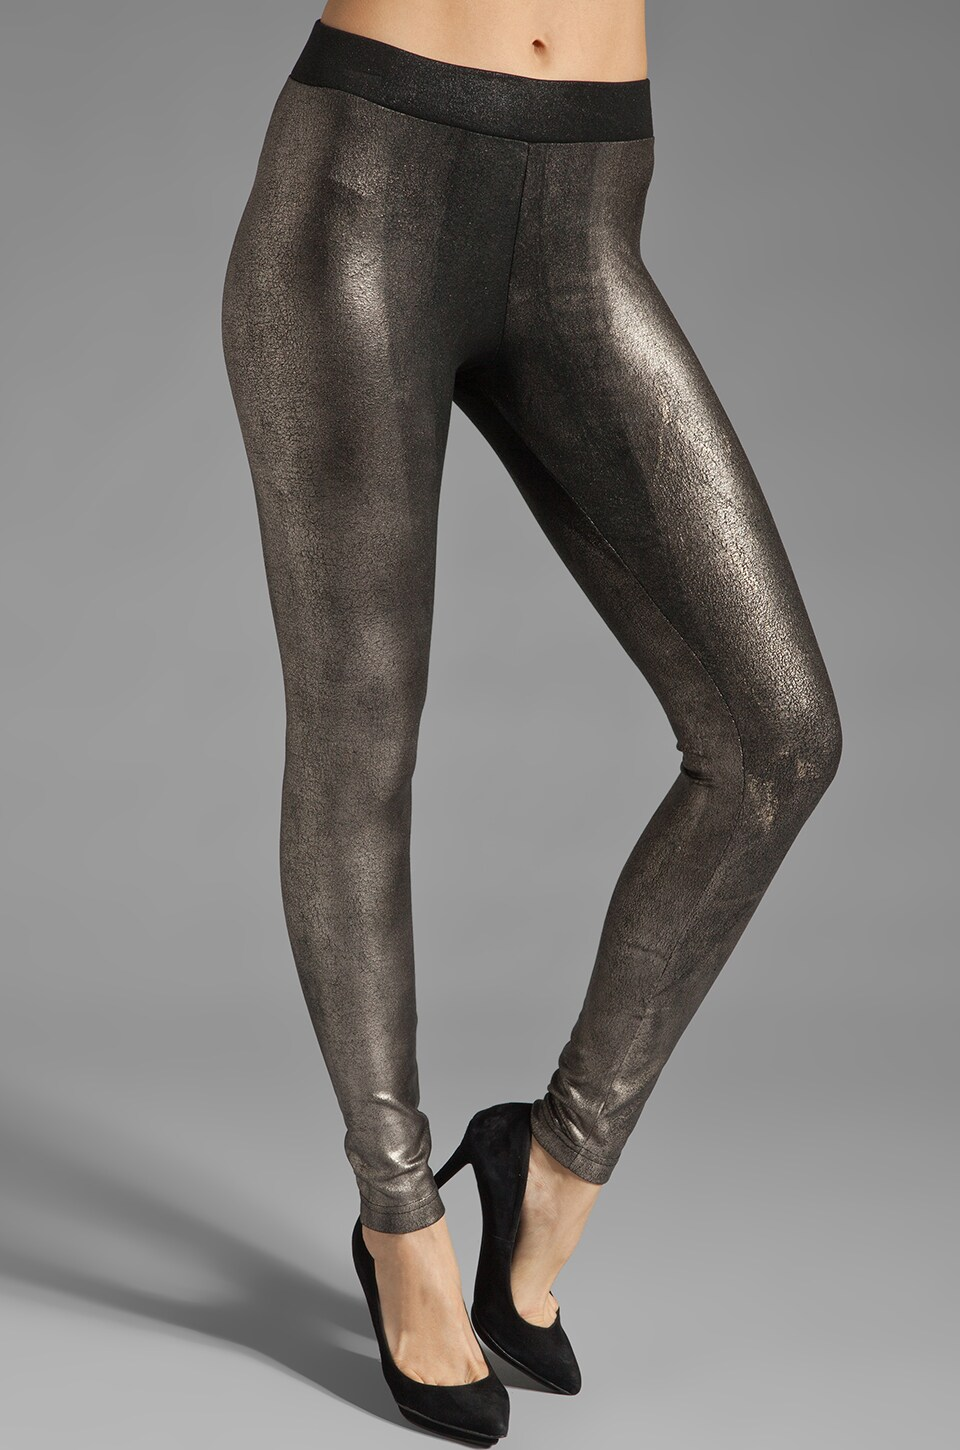 krisa Coated Legging in Foil